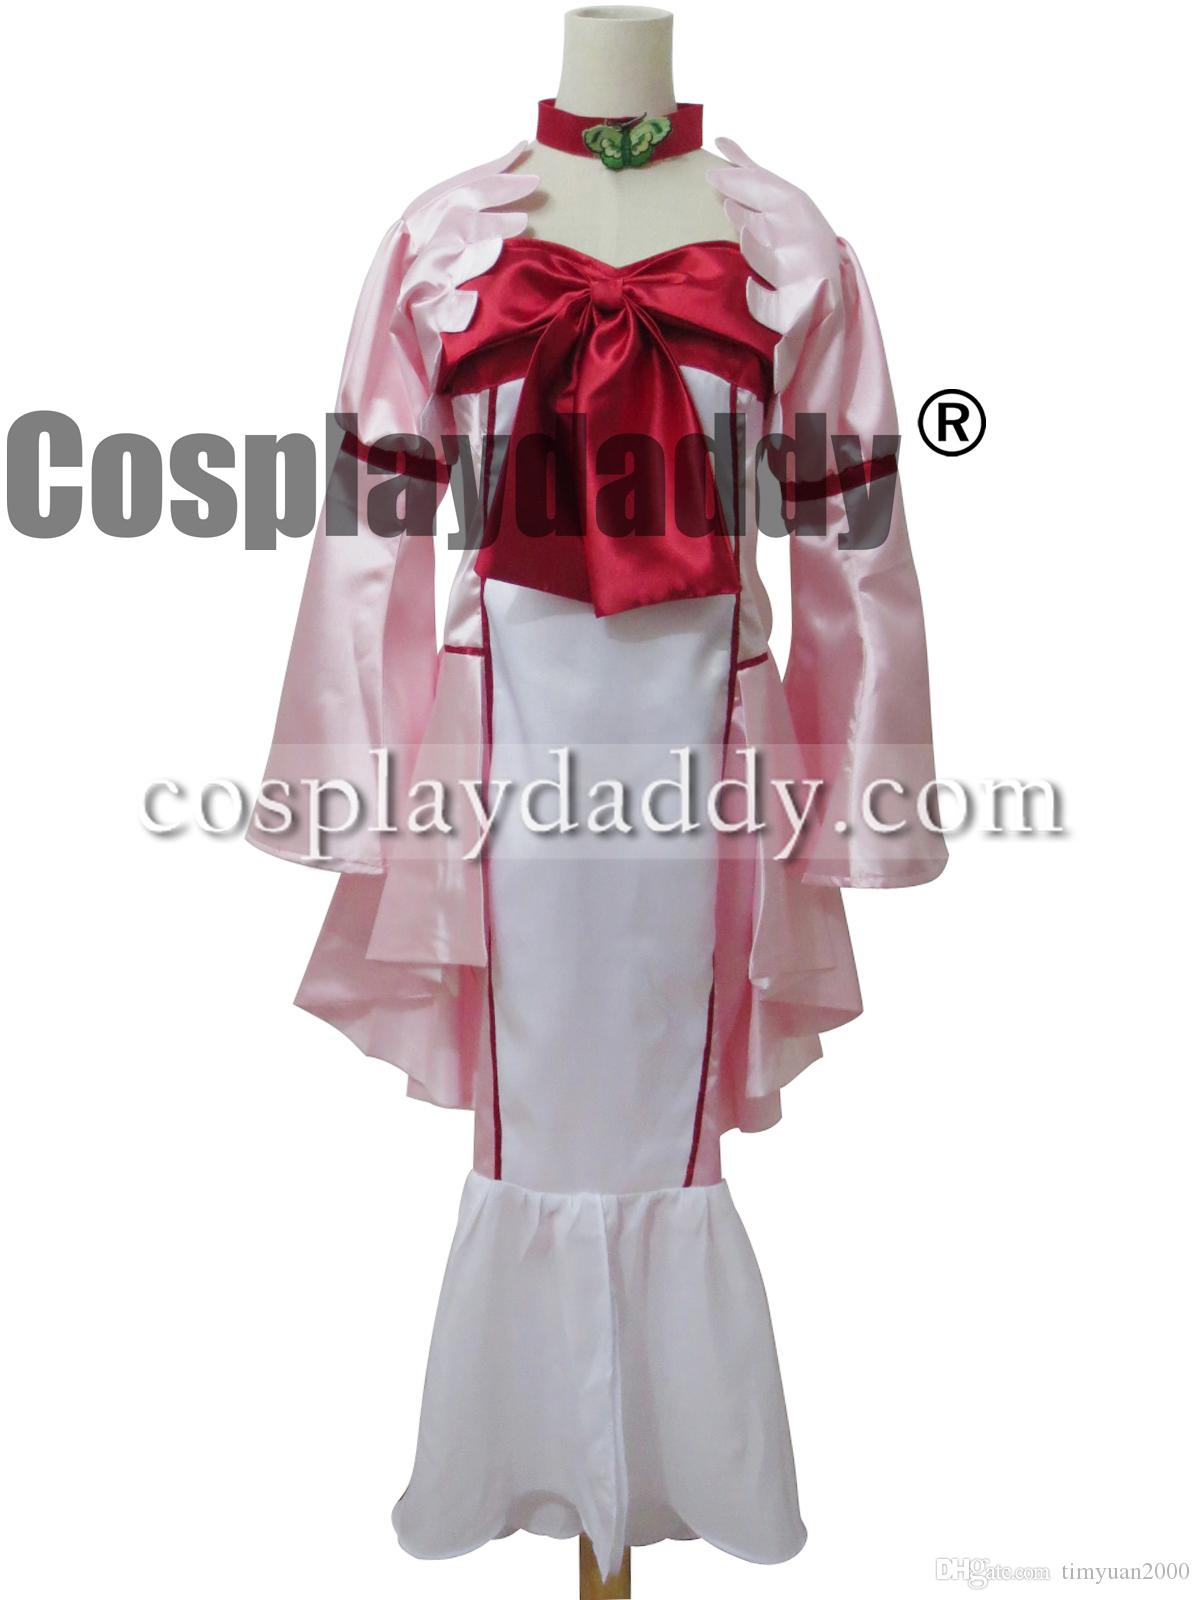 Code Geass R2 Cosplay Nunnally Costume Governor Dress